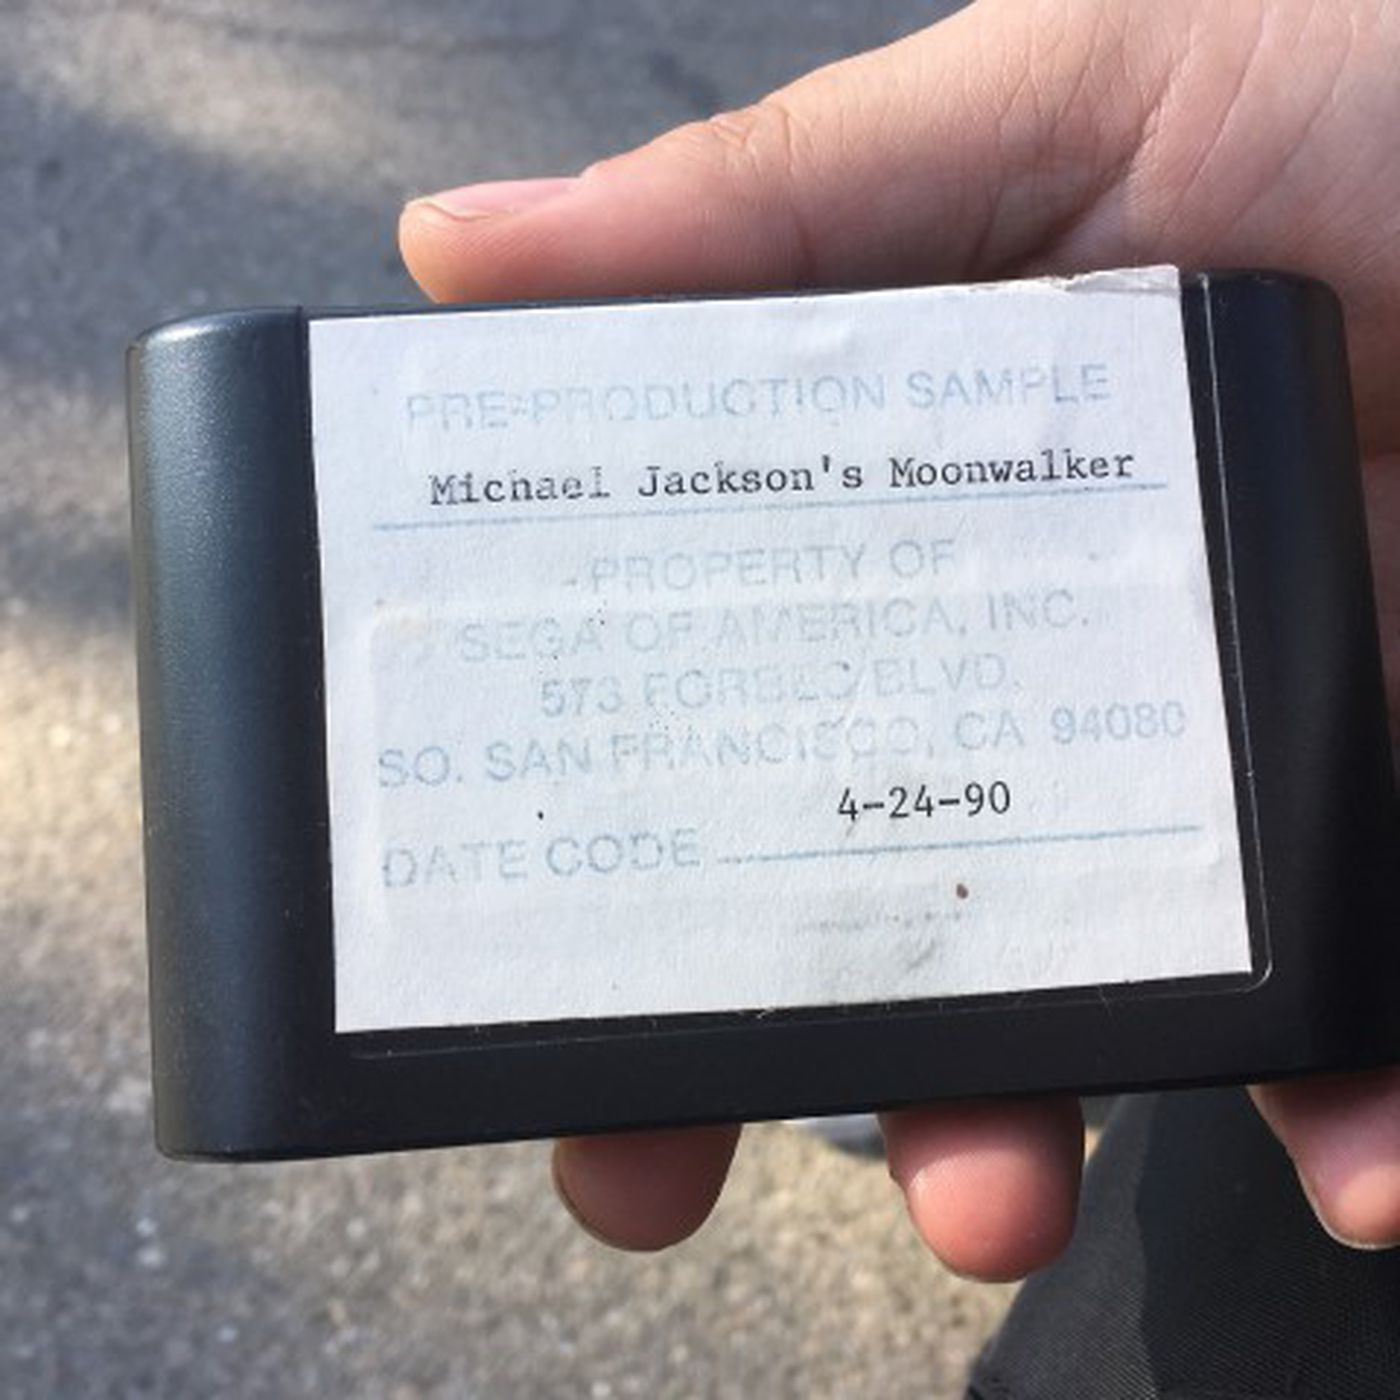 Collector says he has Michael Jackson's Moonwalker with a